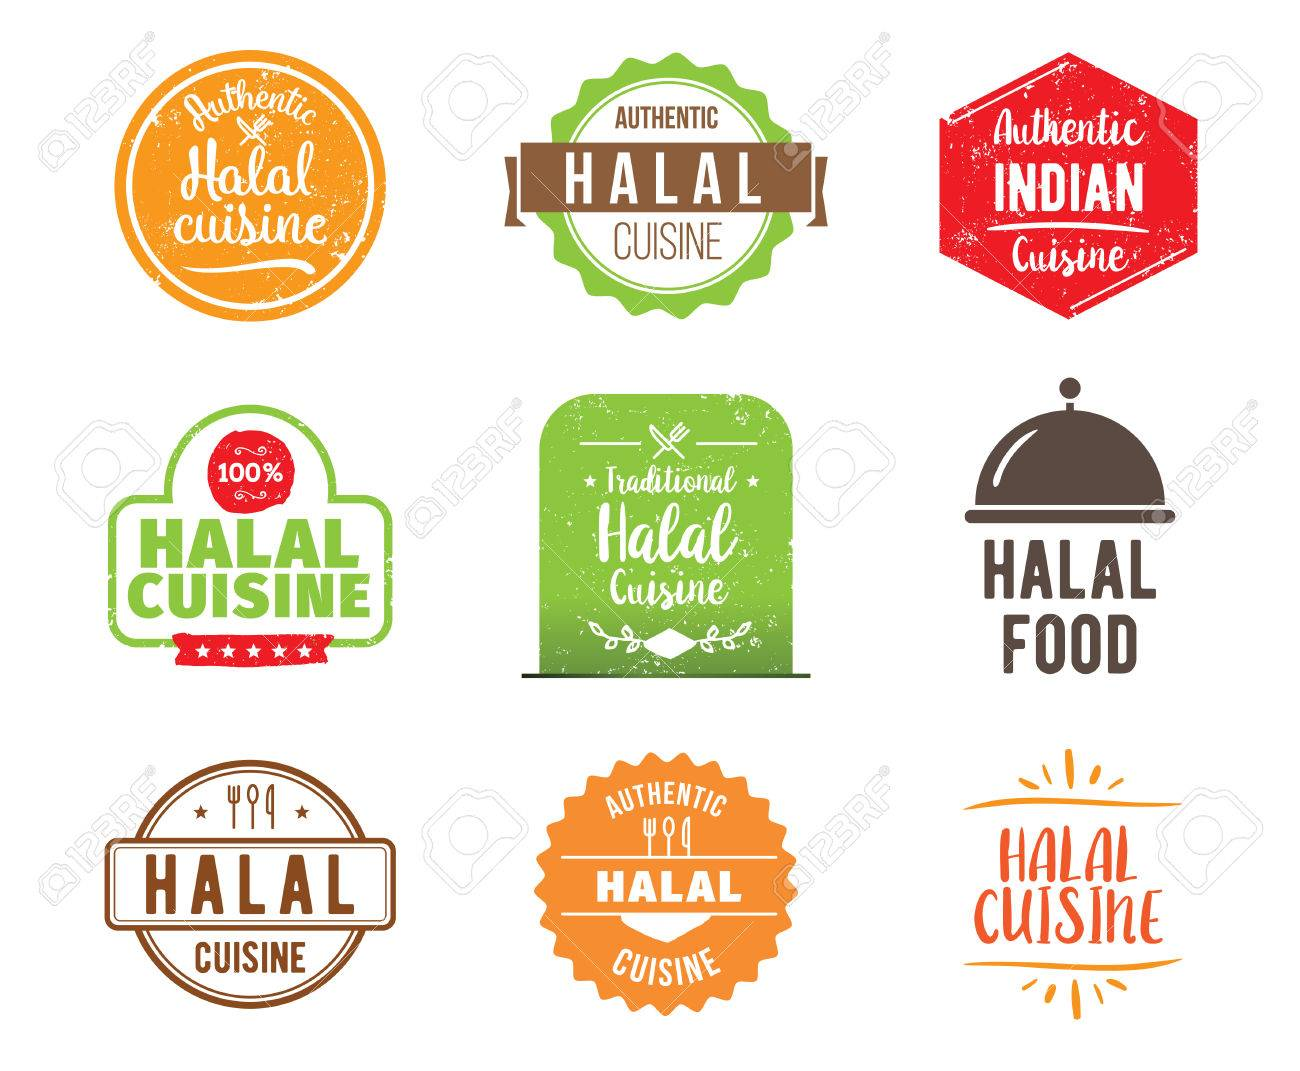 Halal Cuisine Authentic Traditional Food Typographic Design Royalty Free Cliparts Vectors And Stock Illustration Image 58461741